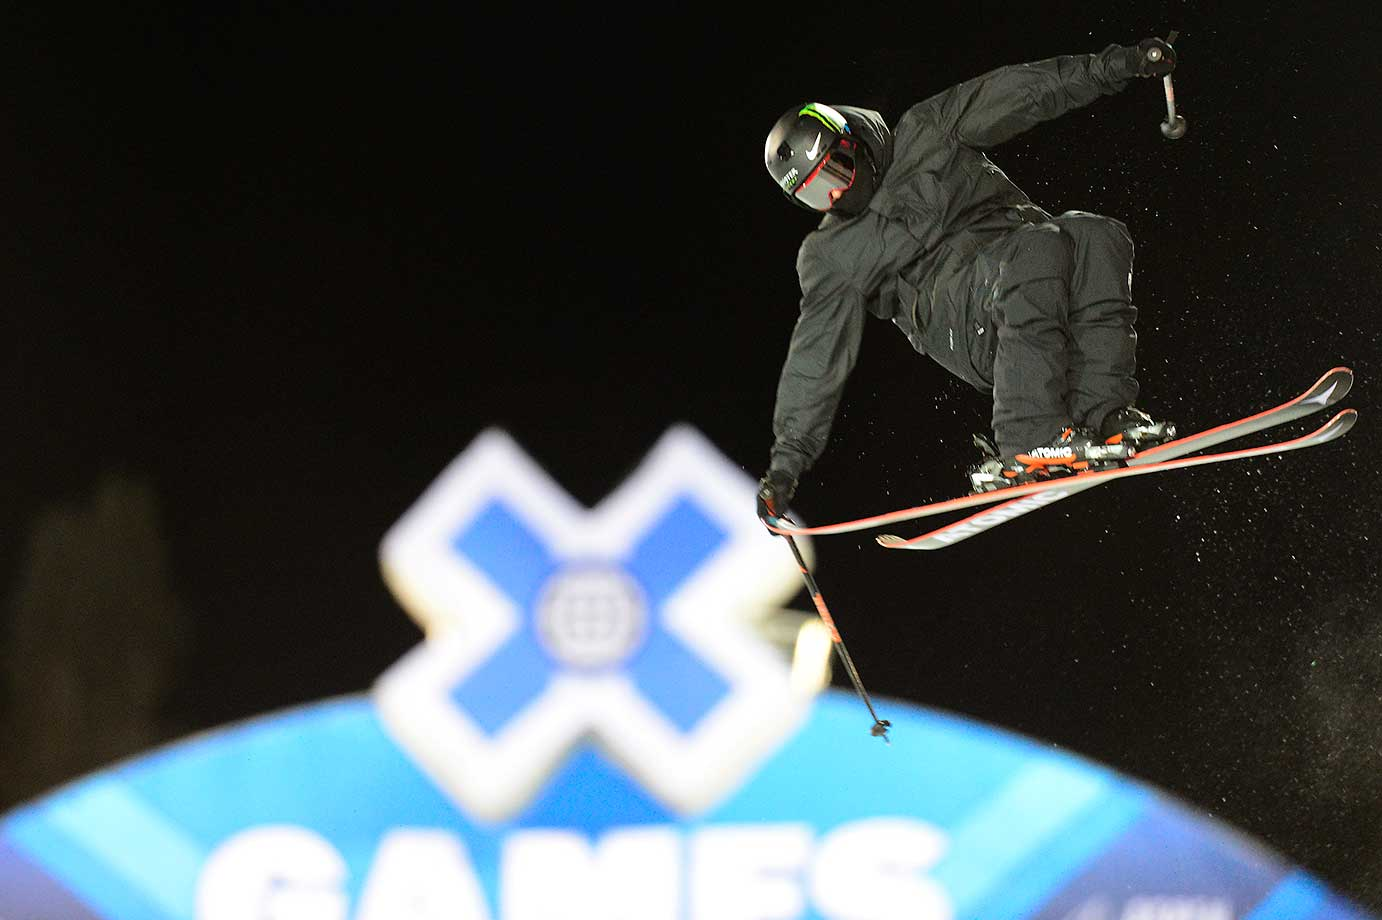 Gus Kenworthy catches some air during practice runs for the X Games at Buttermilk Mountain in Aspen, Colo.